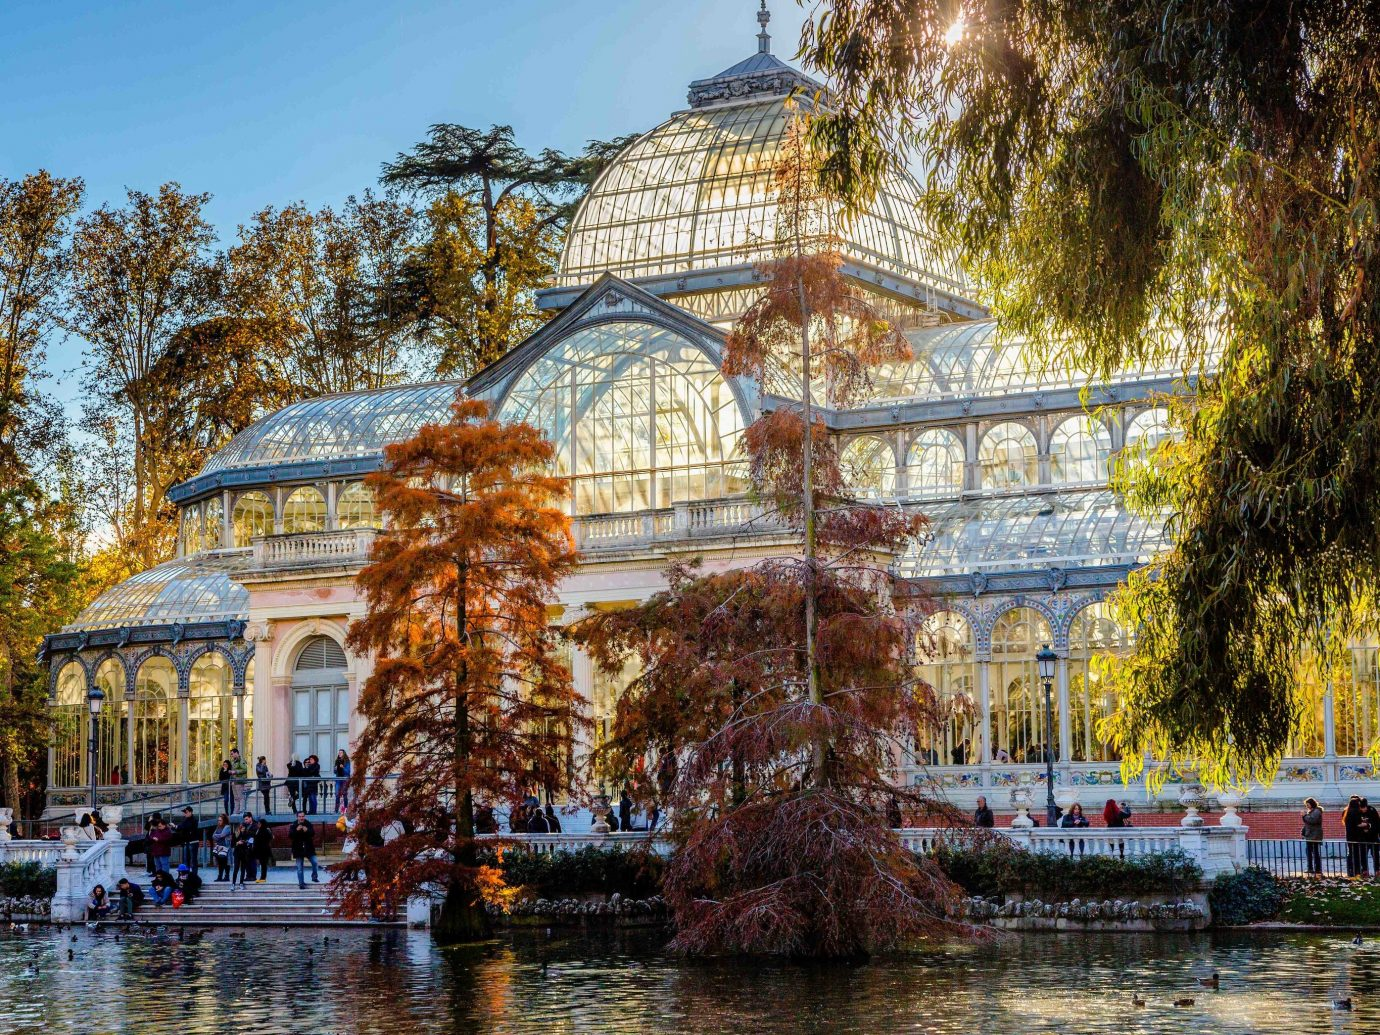 Spring Trips Trip Ideas reflection water tourist attraction waterway landmark tree plant City plaza recreation sky park outdoor structure Canal tourism amusement park tours botanical garden palace